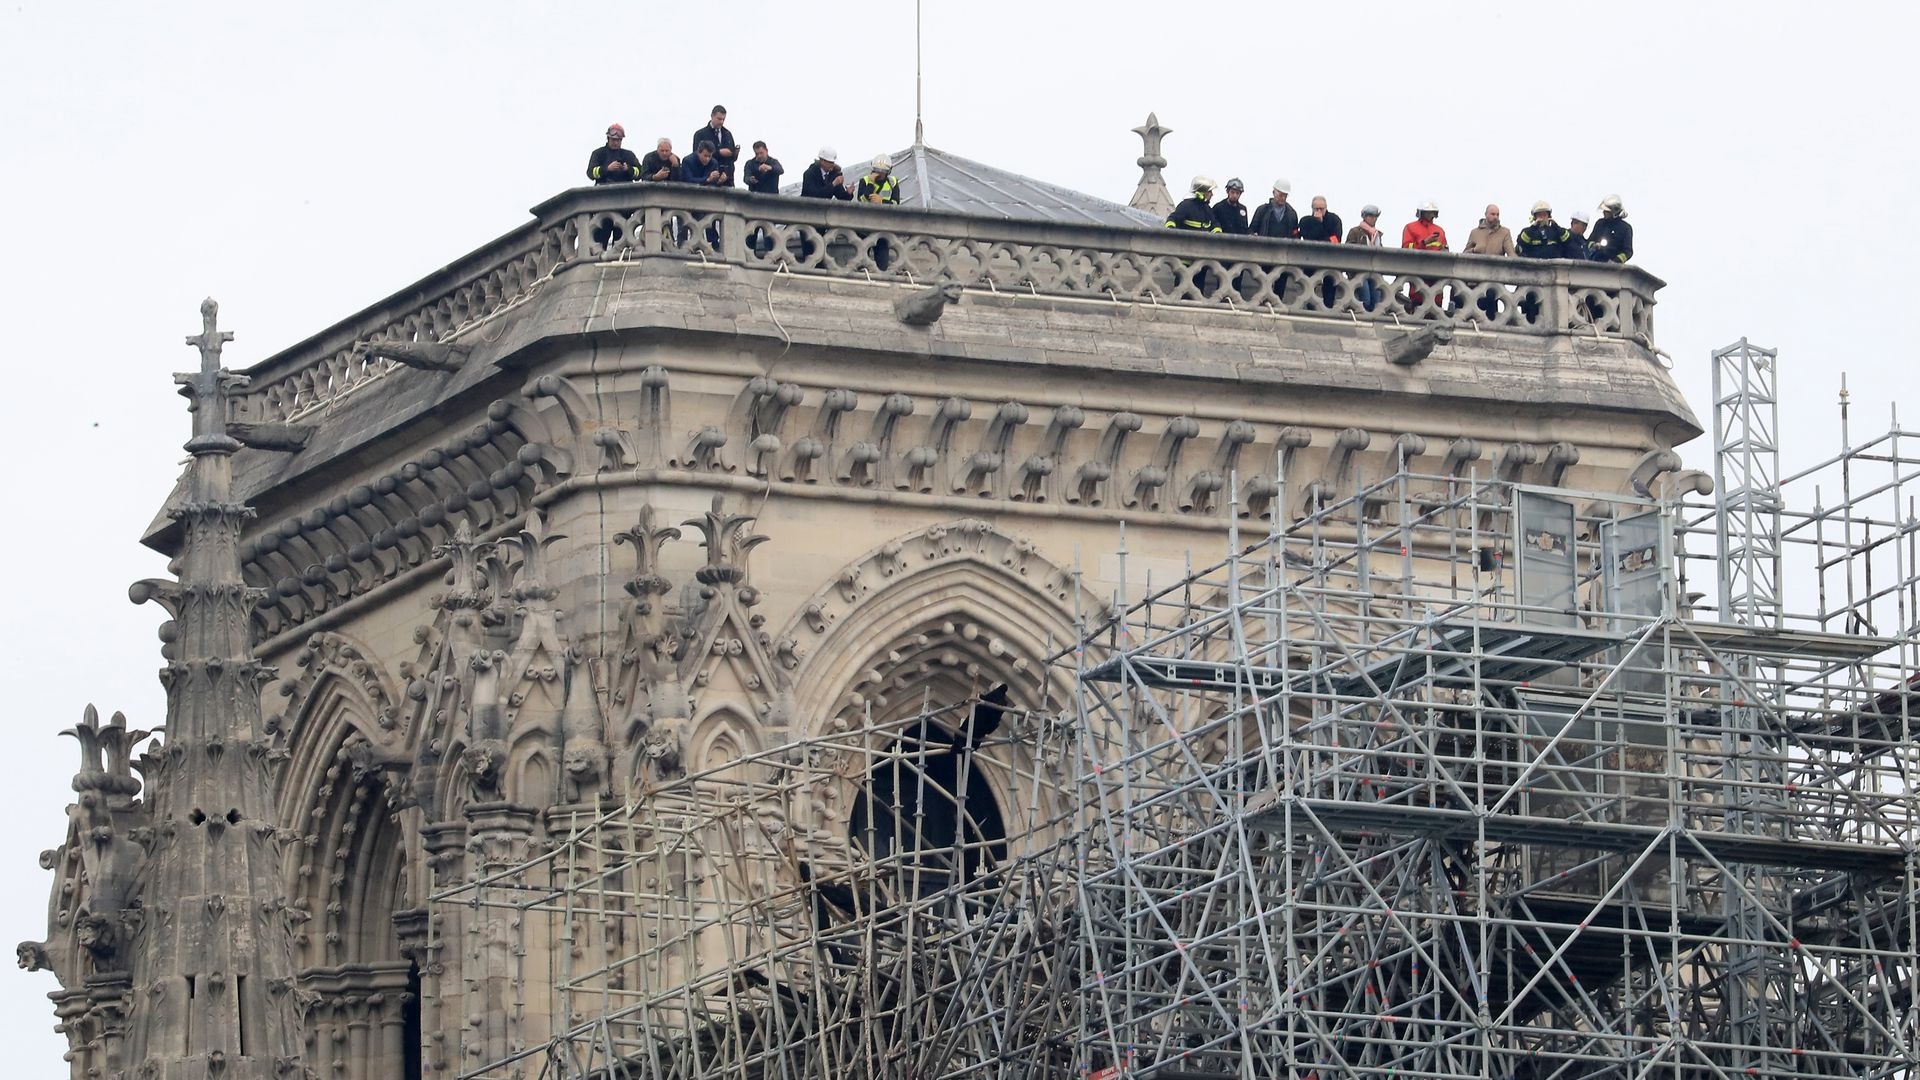 The Notre Dame Cathedral in Paris following a fire which destroyed much of the building on Monday evening.